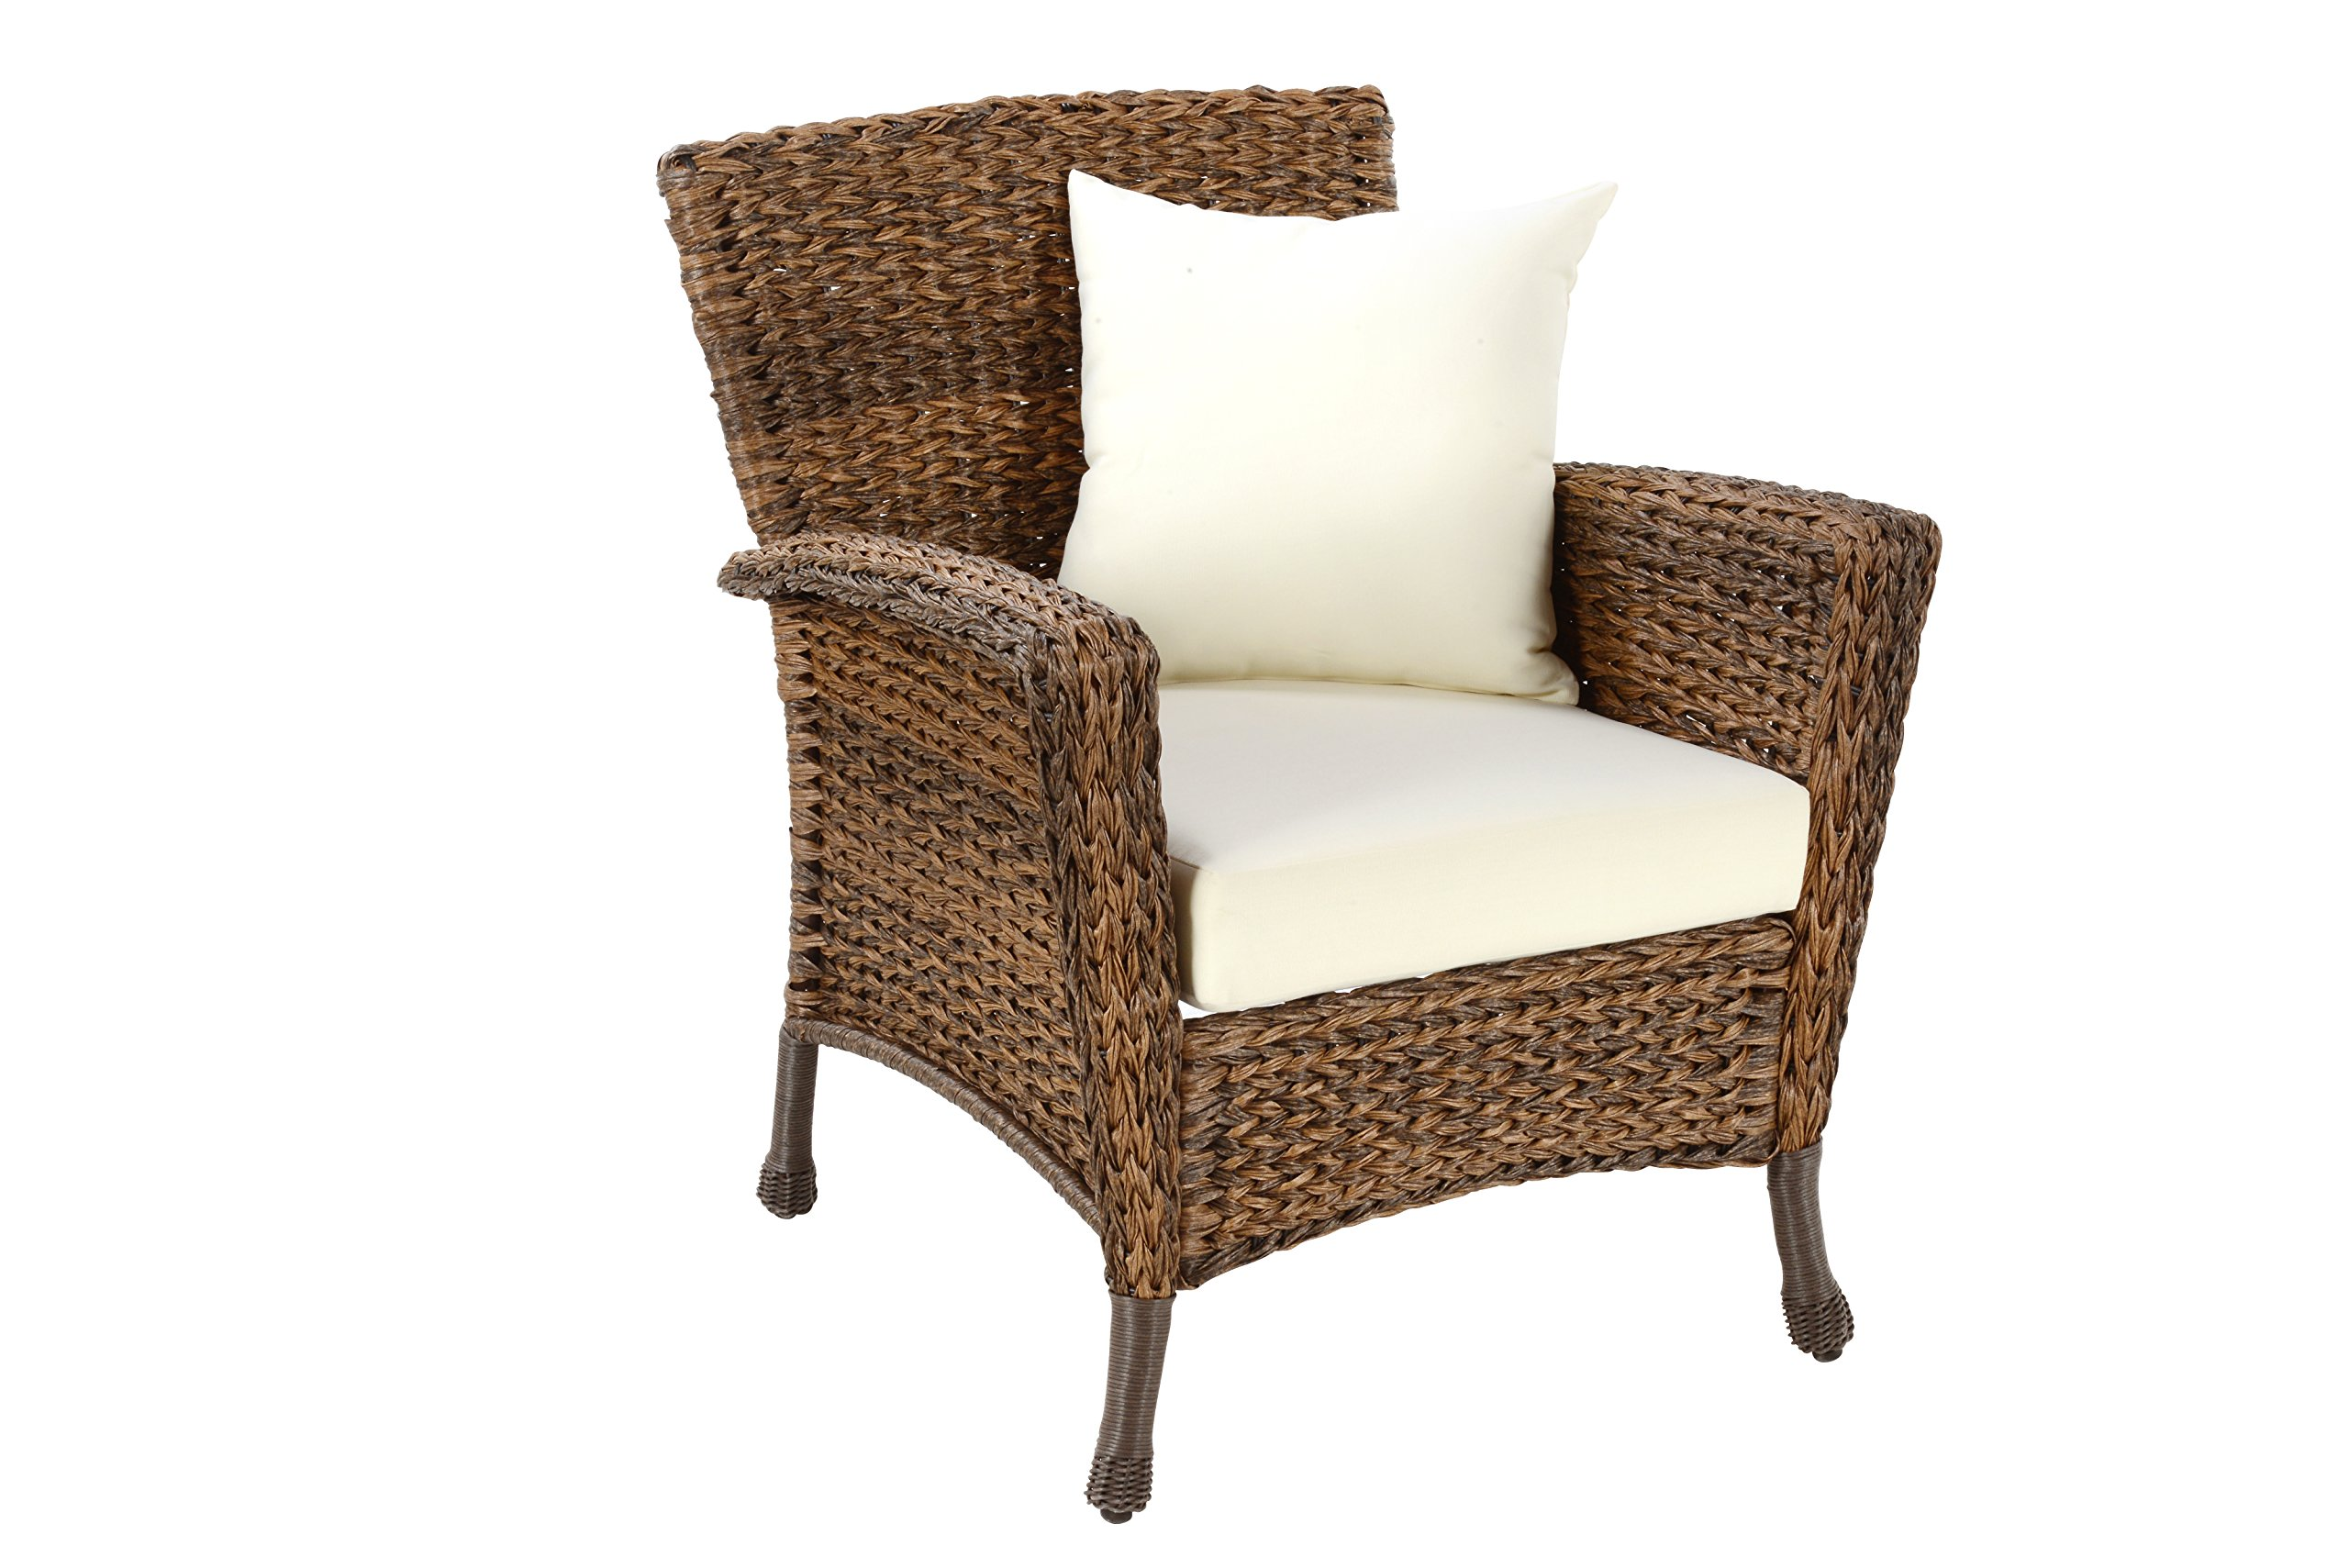 W Unlimited Rustic Collection Outdoor Furniture Light Brown Rattan Wicker 1x Arm Chair Garden Patio Furniture Conversation Set, Lounger Deep Seating Sectional Cushions